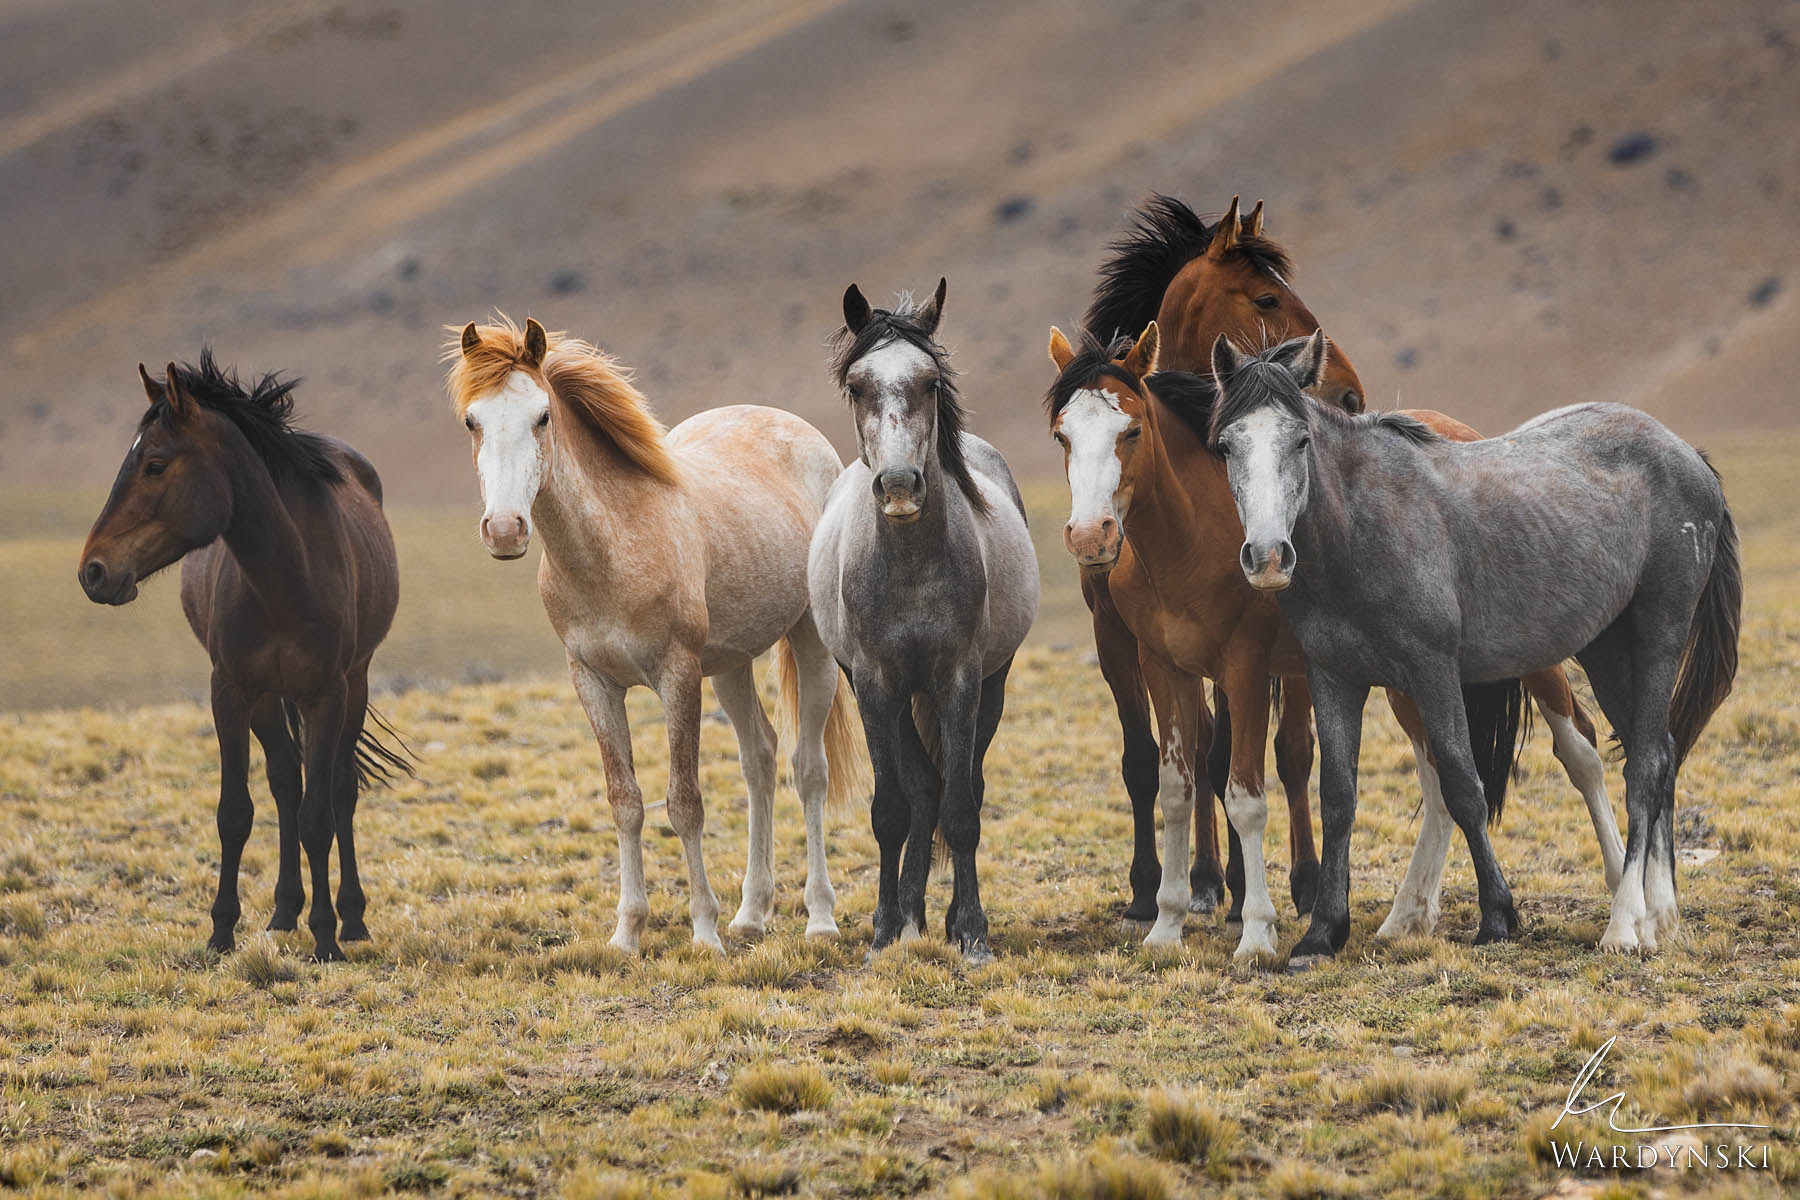 Fine Art Print | Limited Edition of 50  If there ever was an alternative rock group to be created by wild horses, these would...